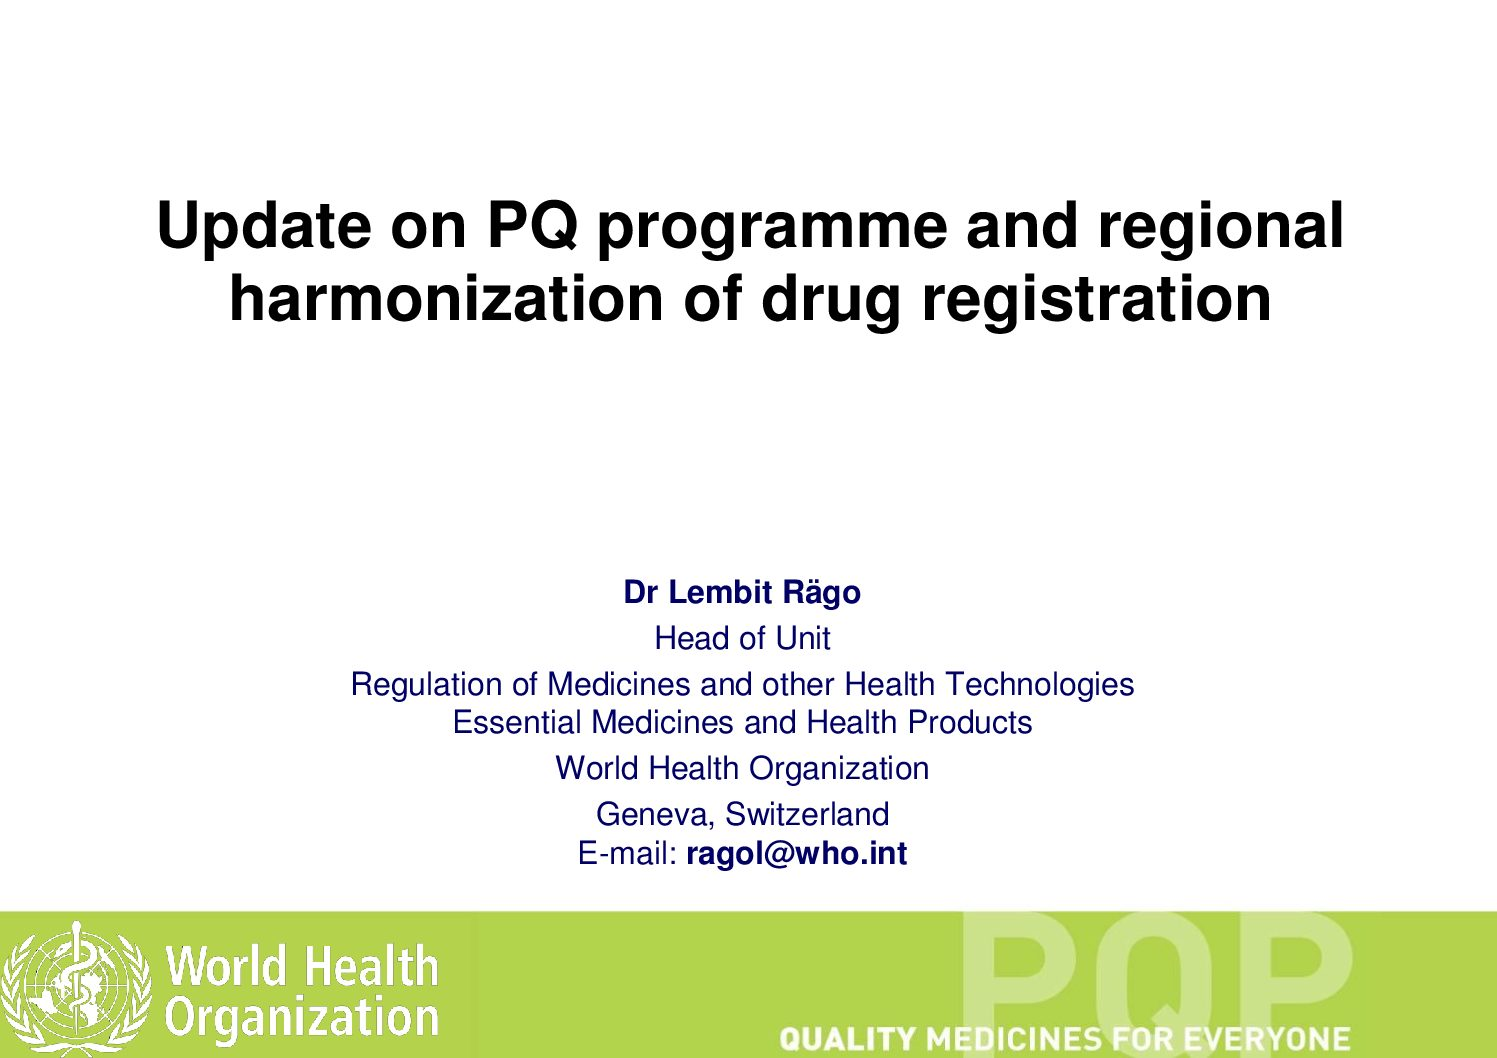 Update on PQ programme and regional harmonization of drug registration 2015.